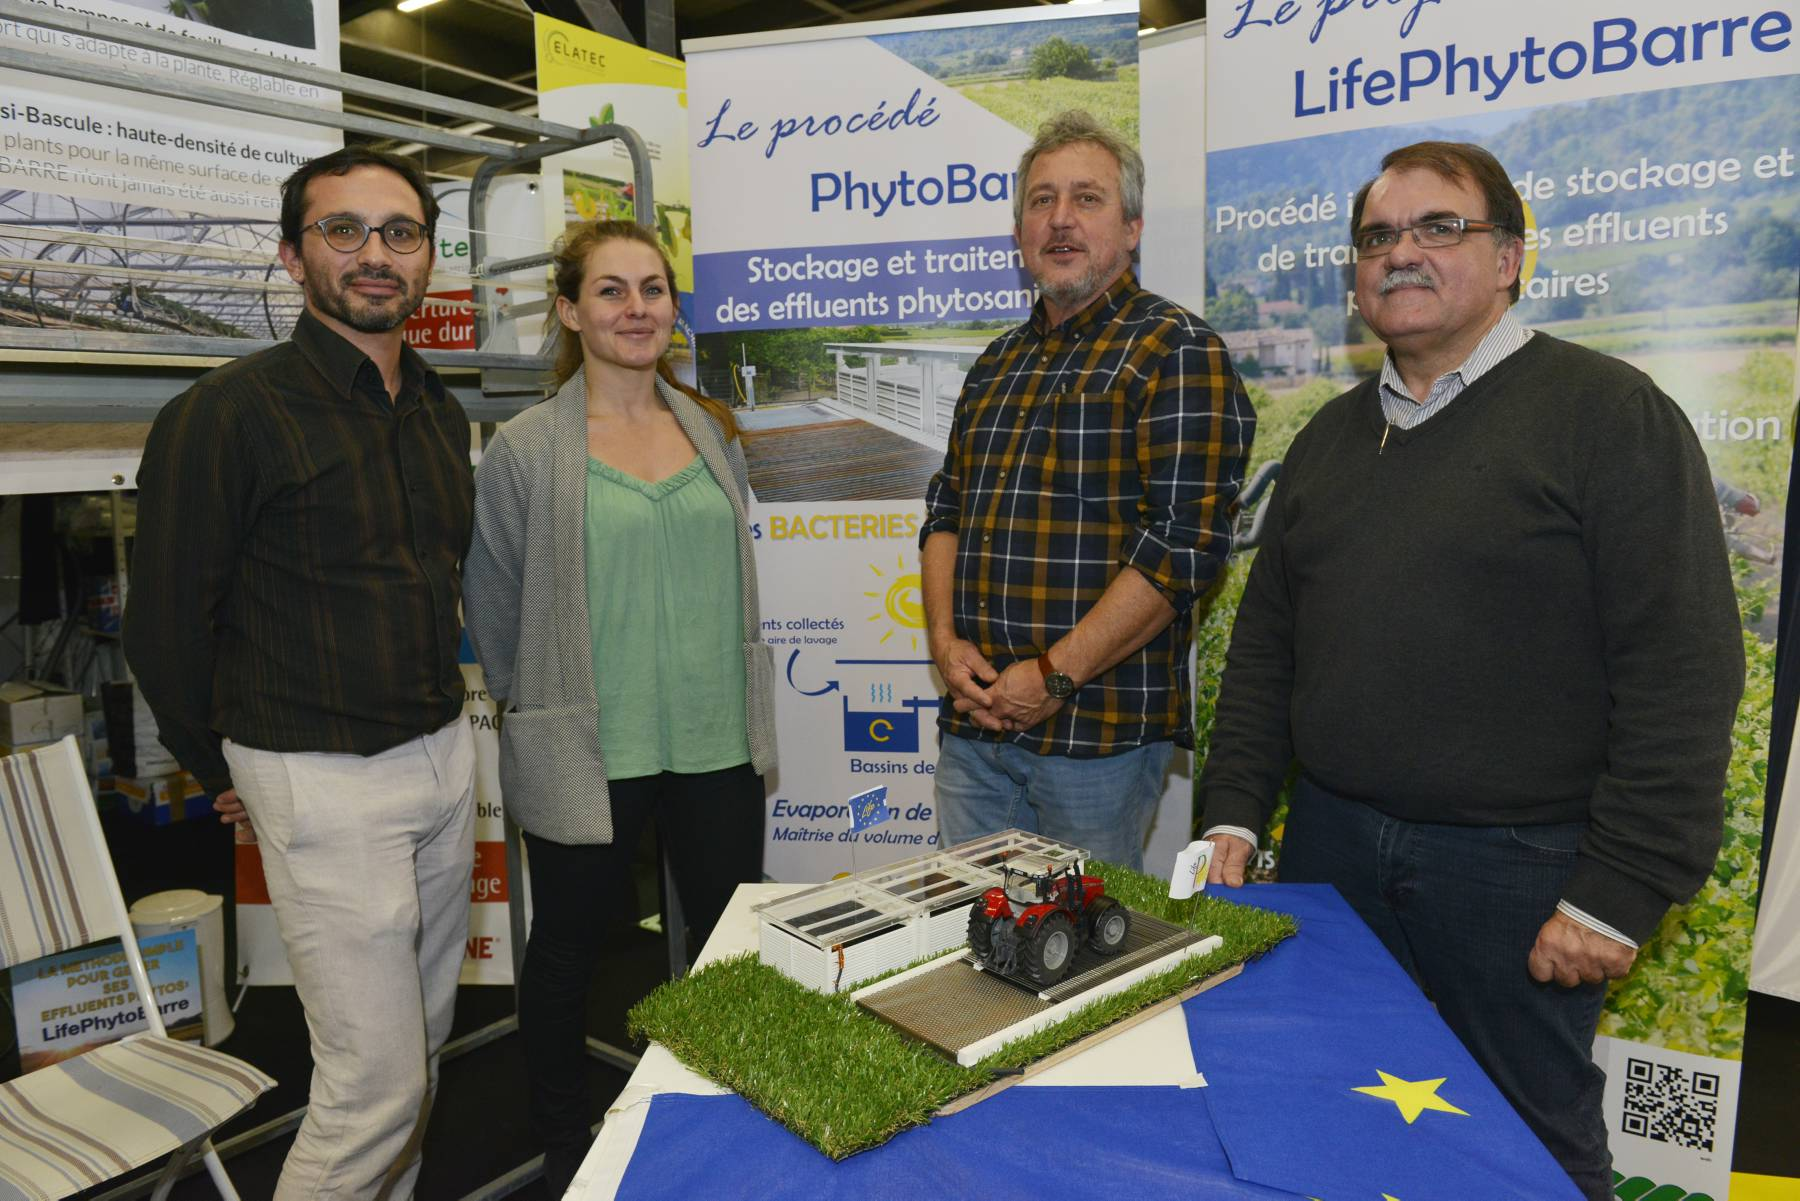 Copyright : Cédric Faimali /GFA<br /> The communication part includes project presentation during agricultural exhibitions such as the famous Vinitech Sifel which took place in Bordeaux (France) in november 2016.